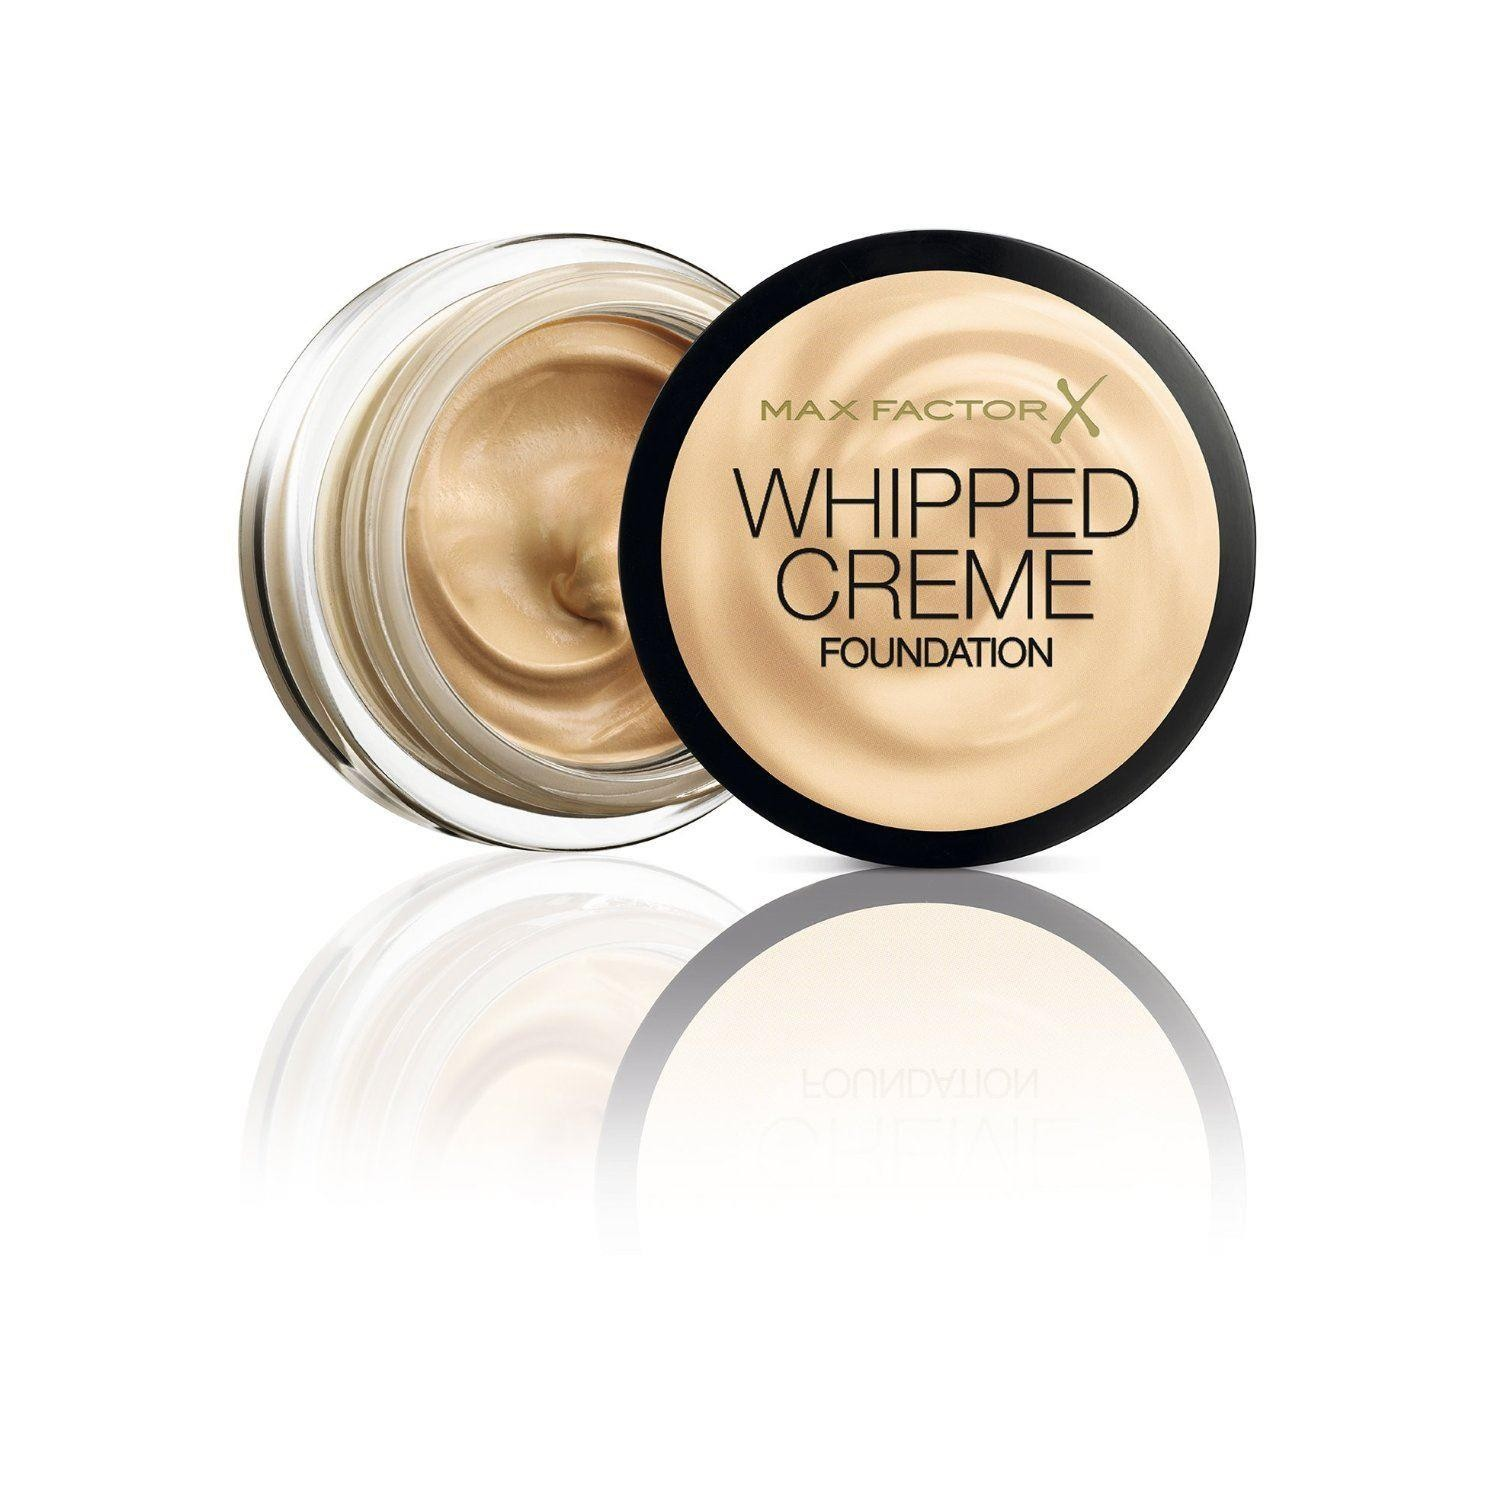 Max Factor Whipped Creme Foundation 85 Caramel 18 ml